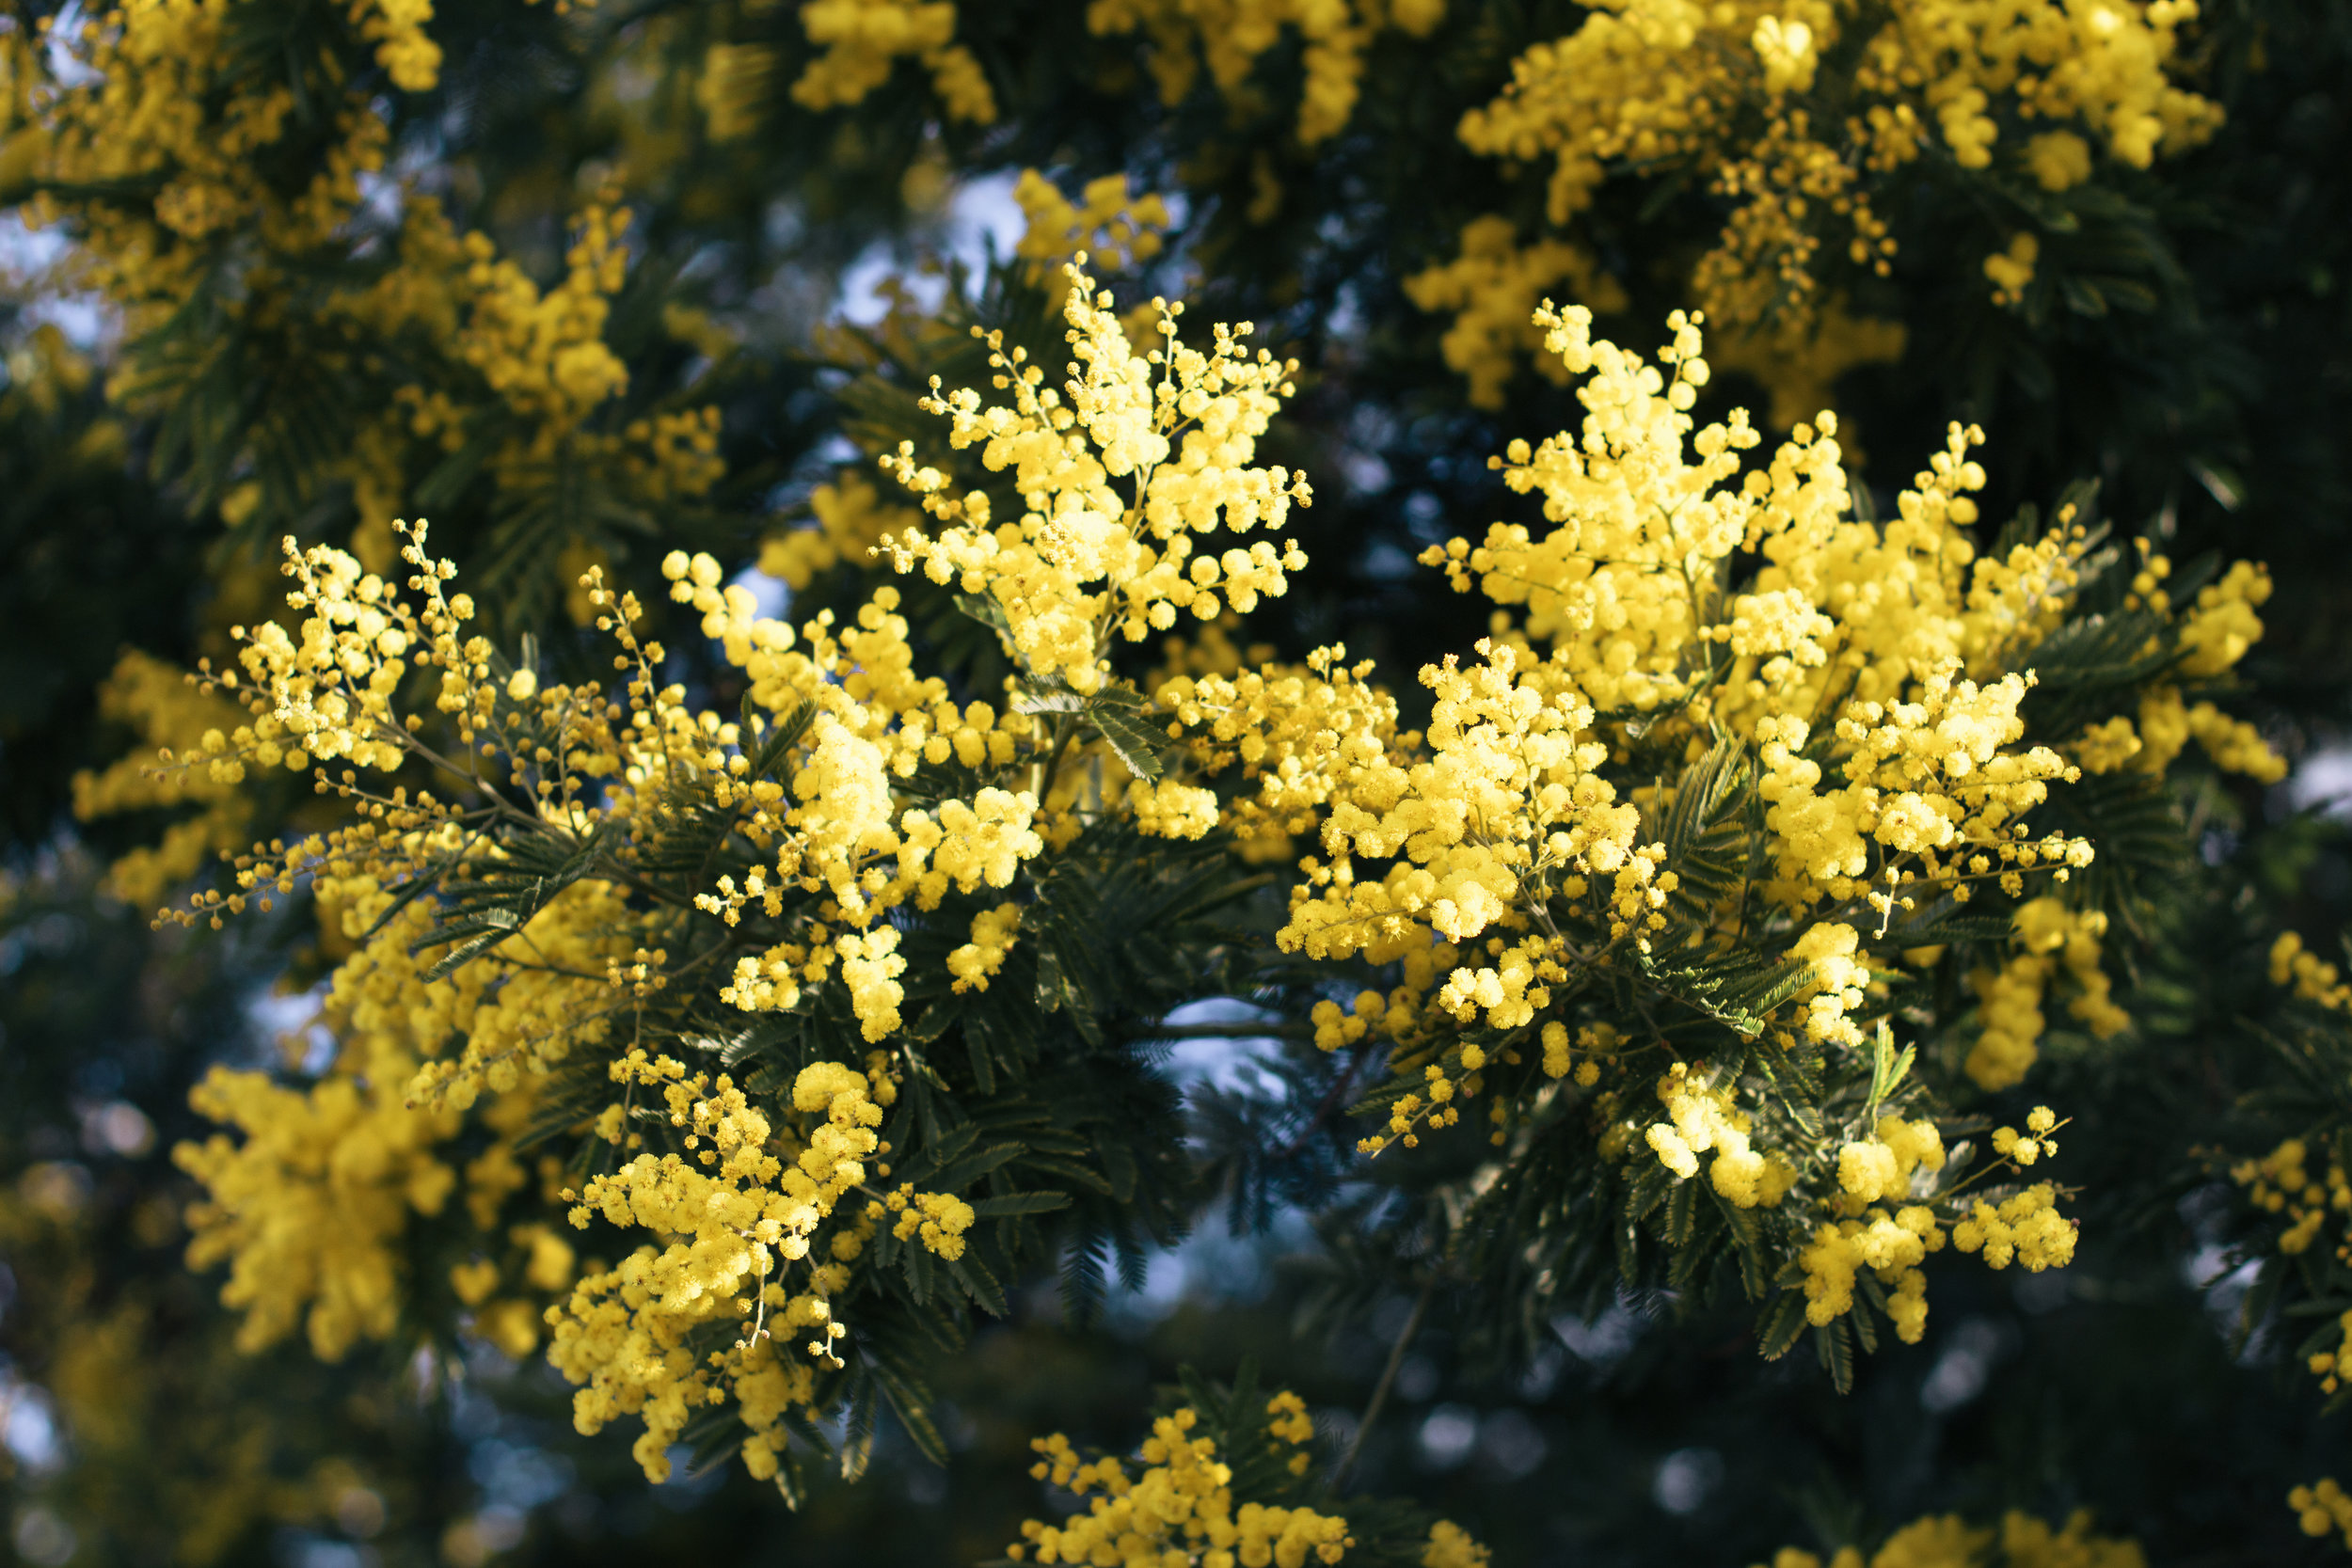 Is It Spring Yet? | A mimosa tree blooming in Notting Hill, West London | Sundays and Somedays